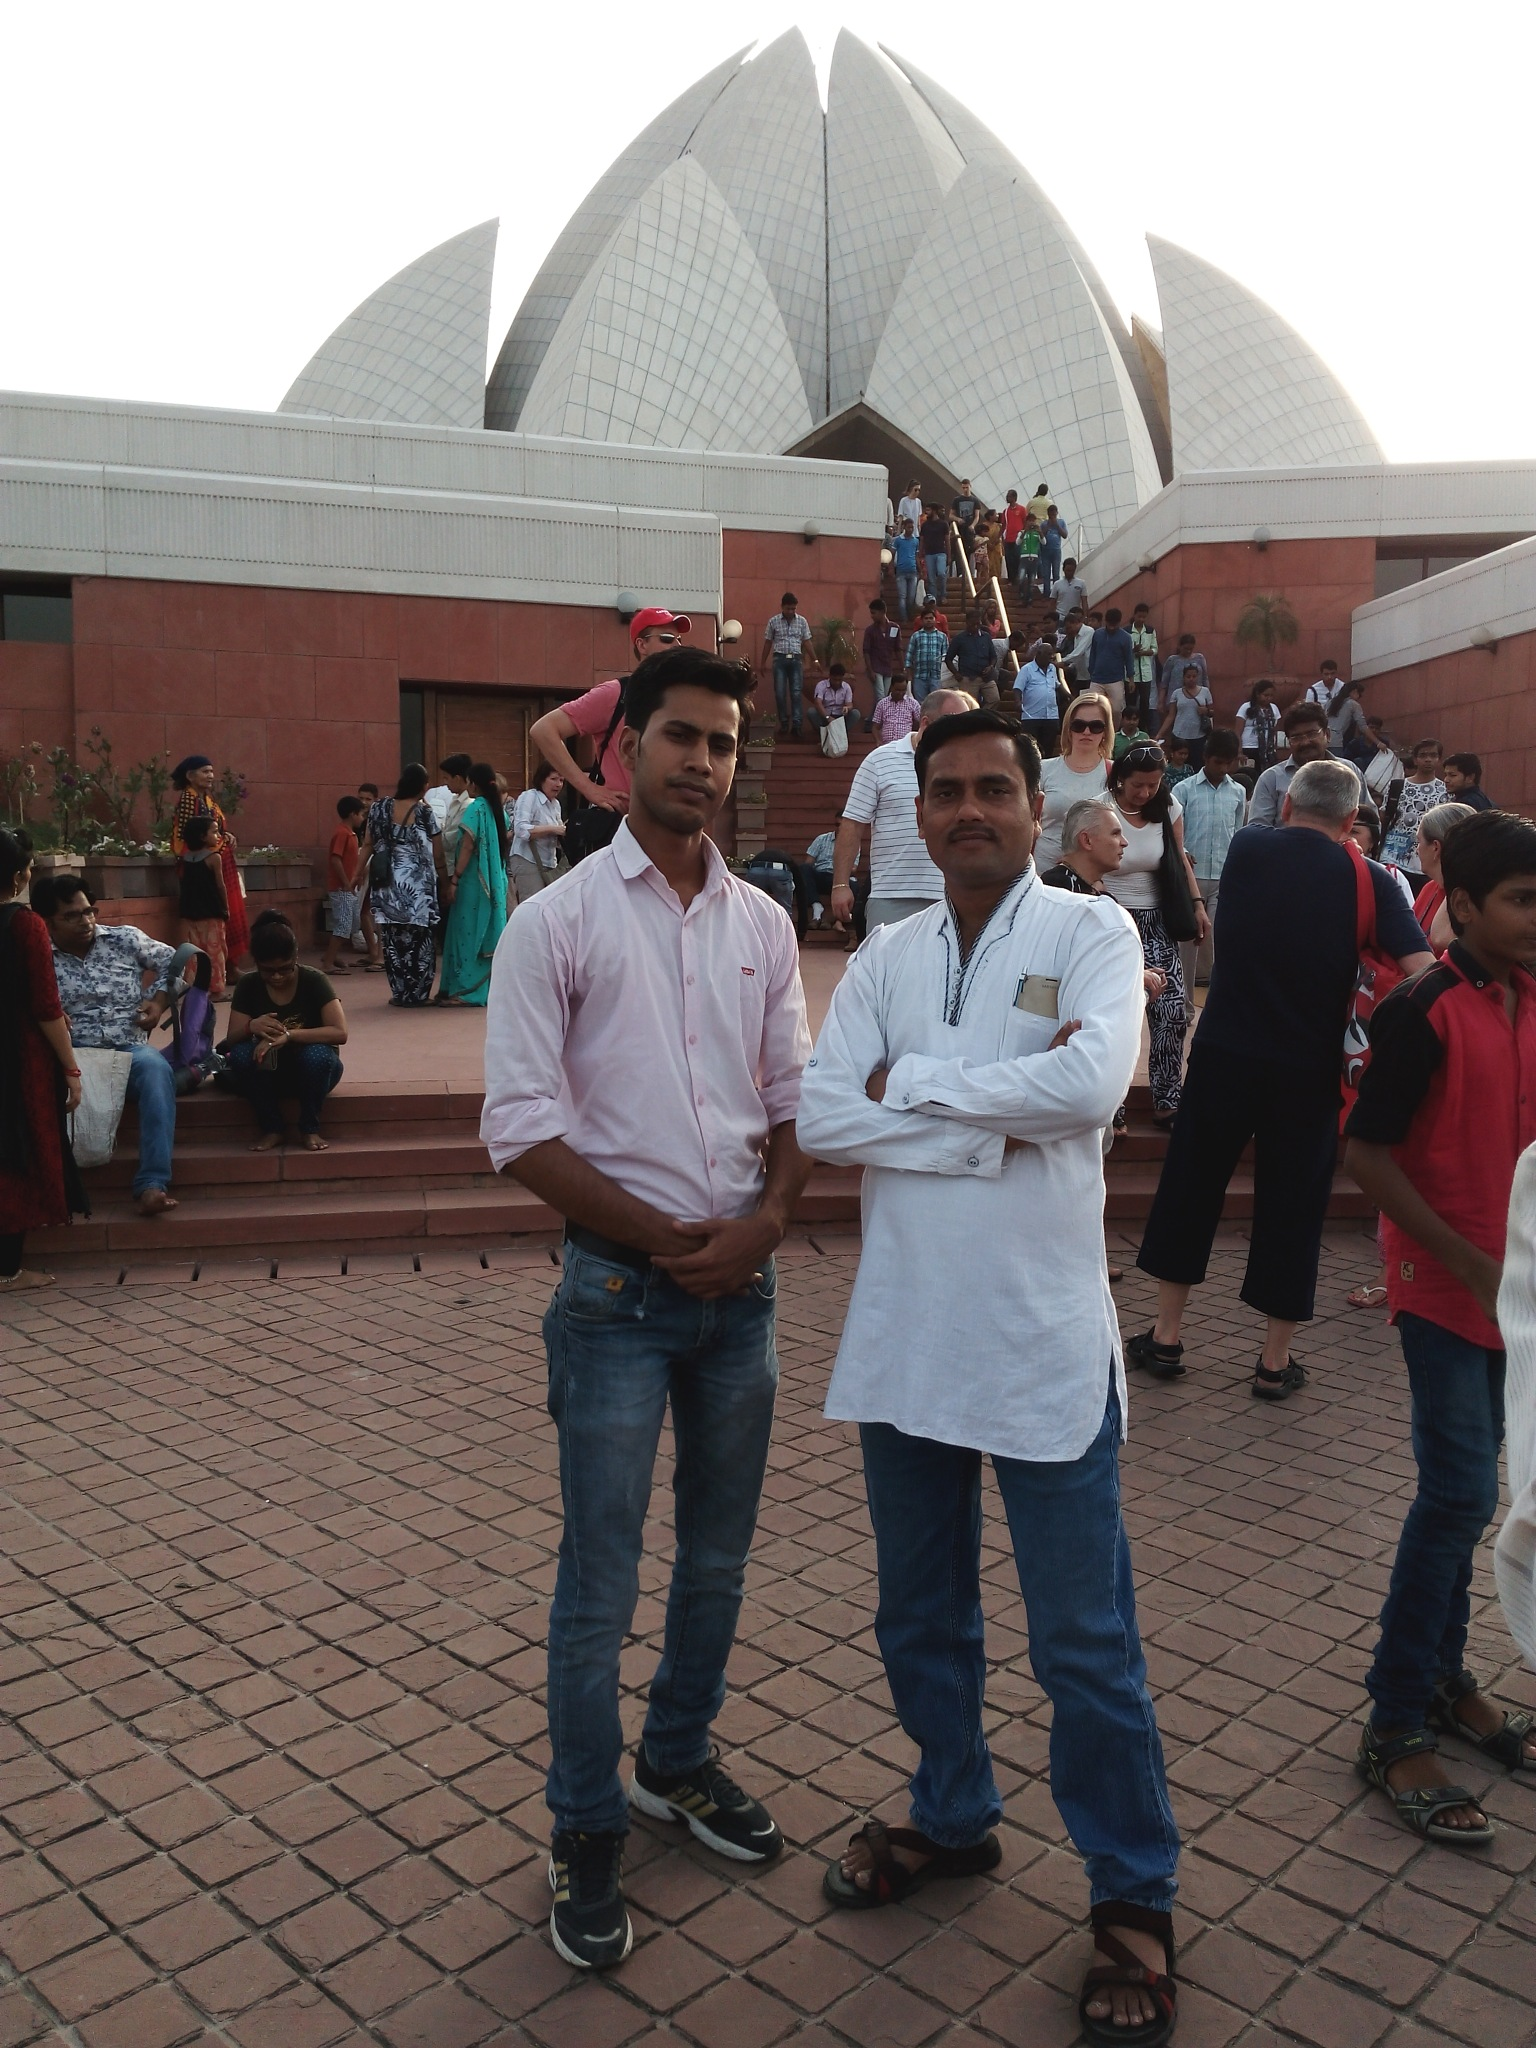 Me with my Uncle sri at Lotus Temple Delhi by Shailendra Prajapati